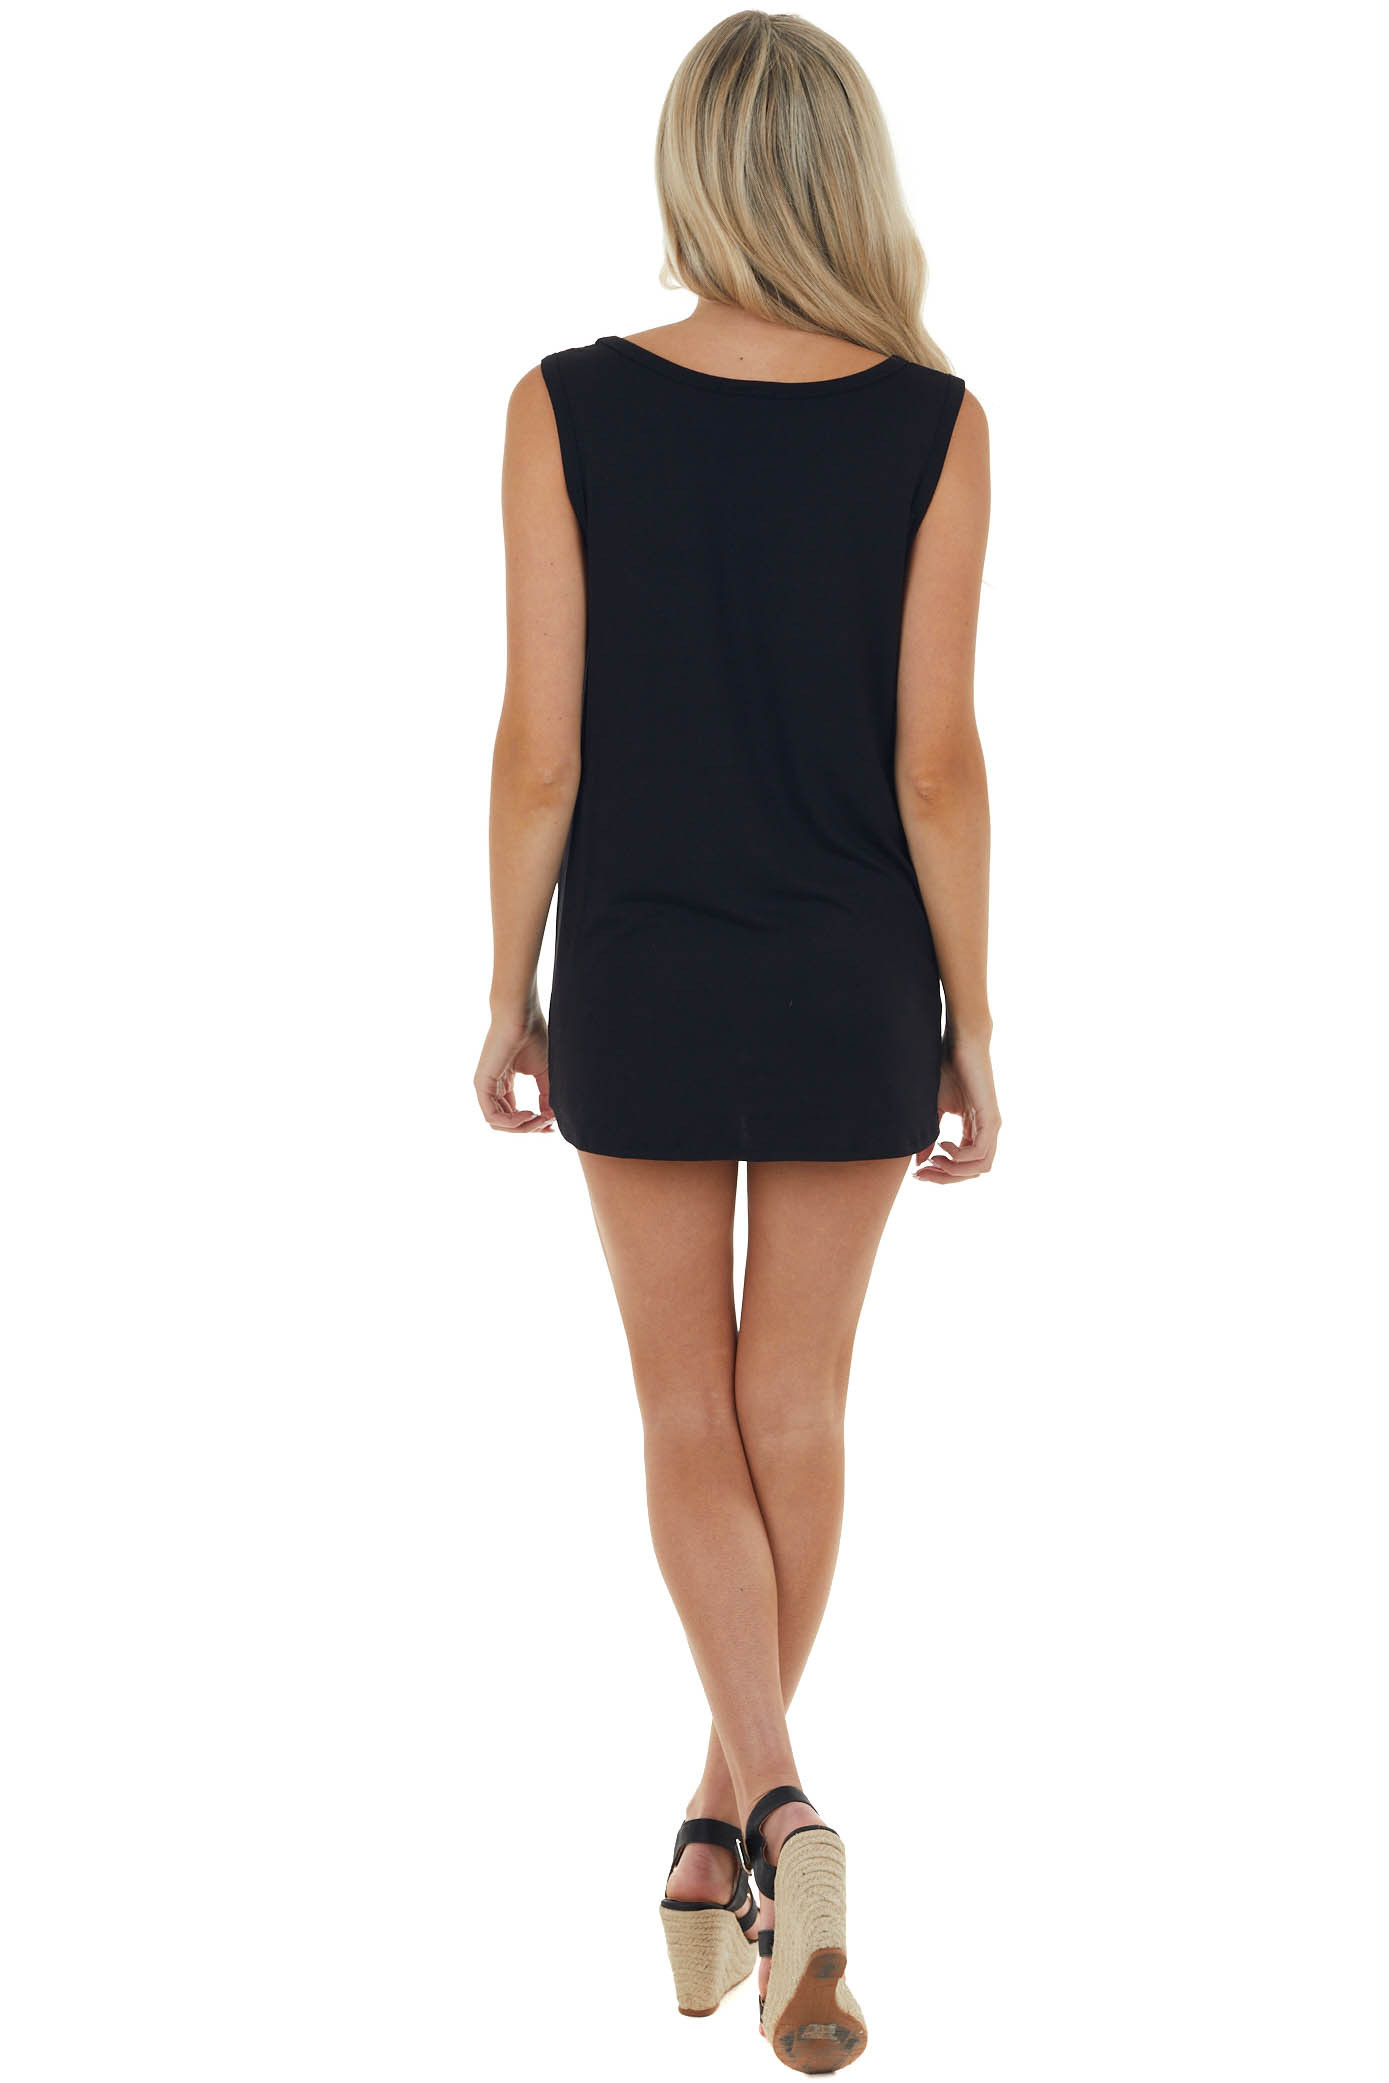 Black Colorblock Sleeveless Stretchy Knit Top